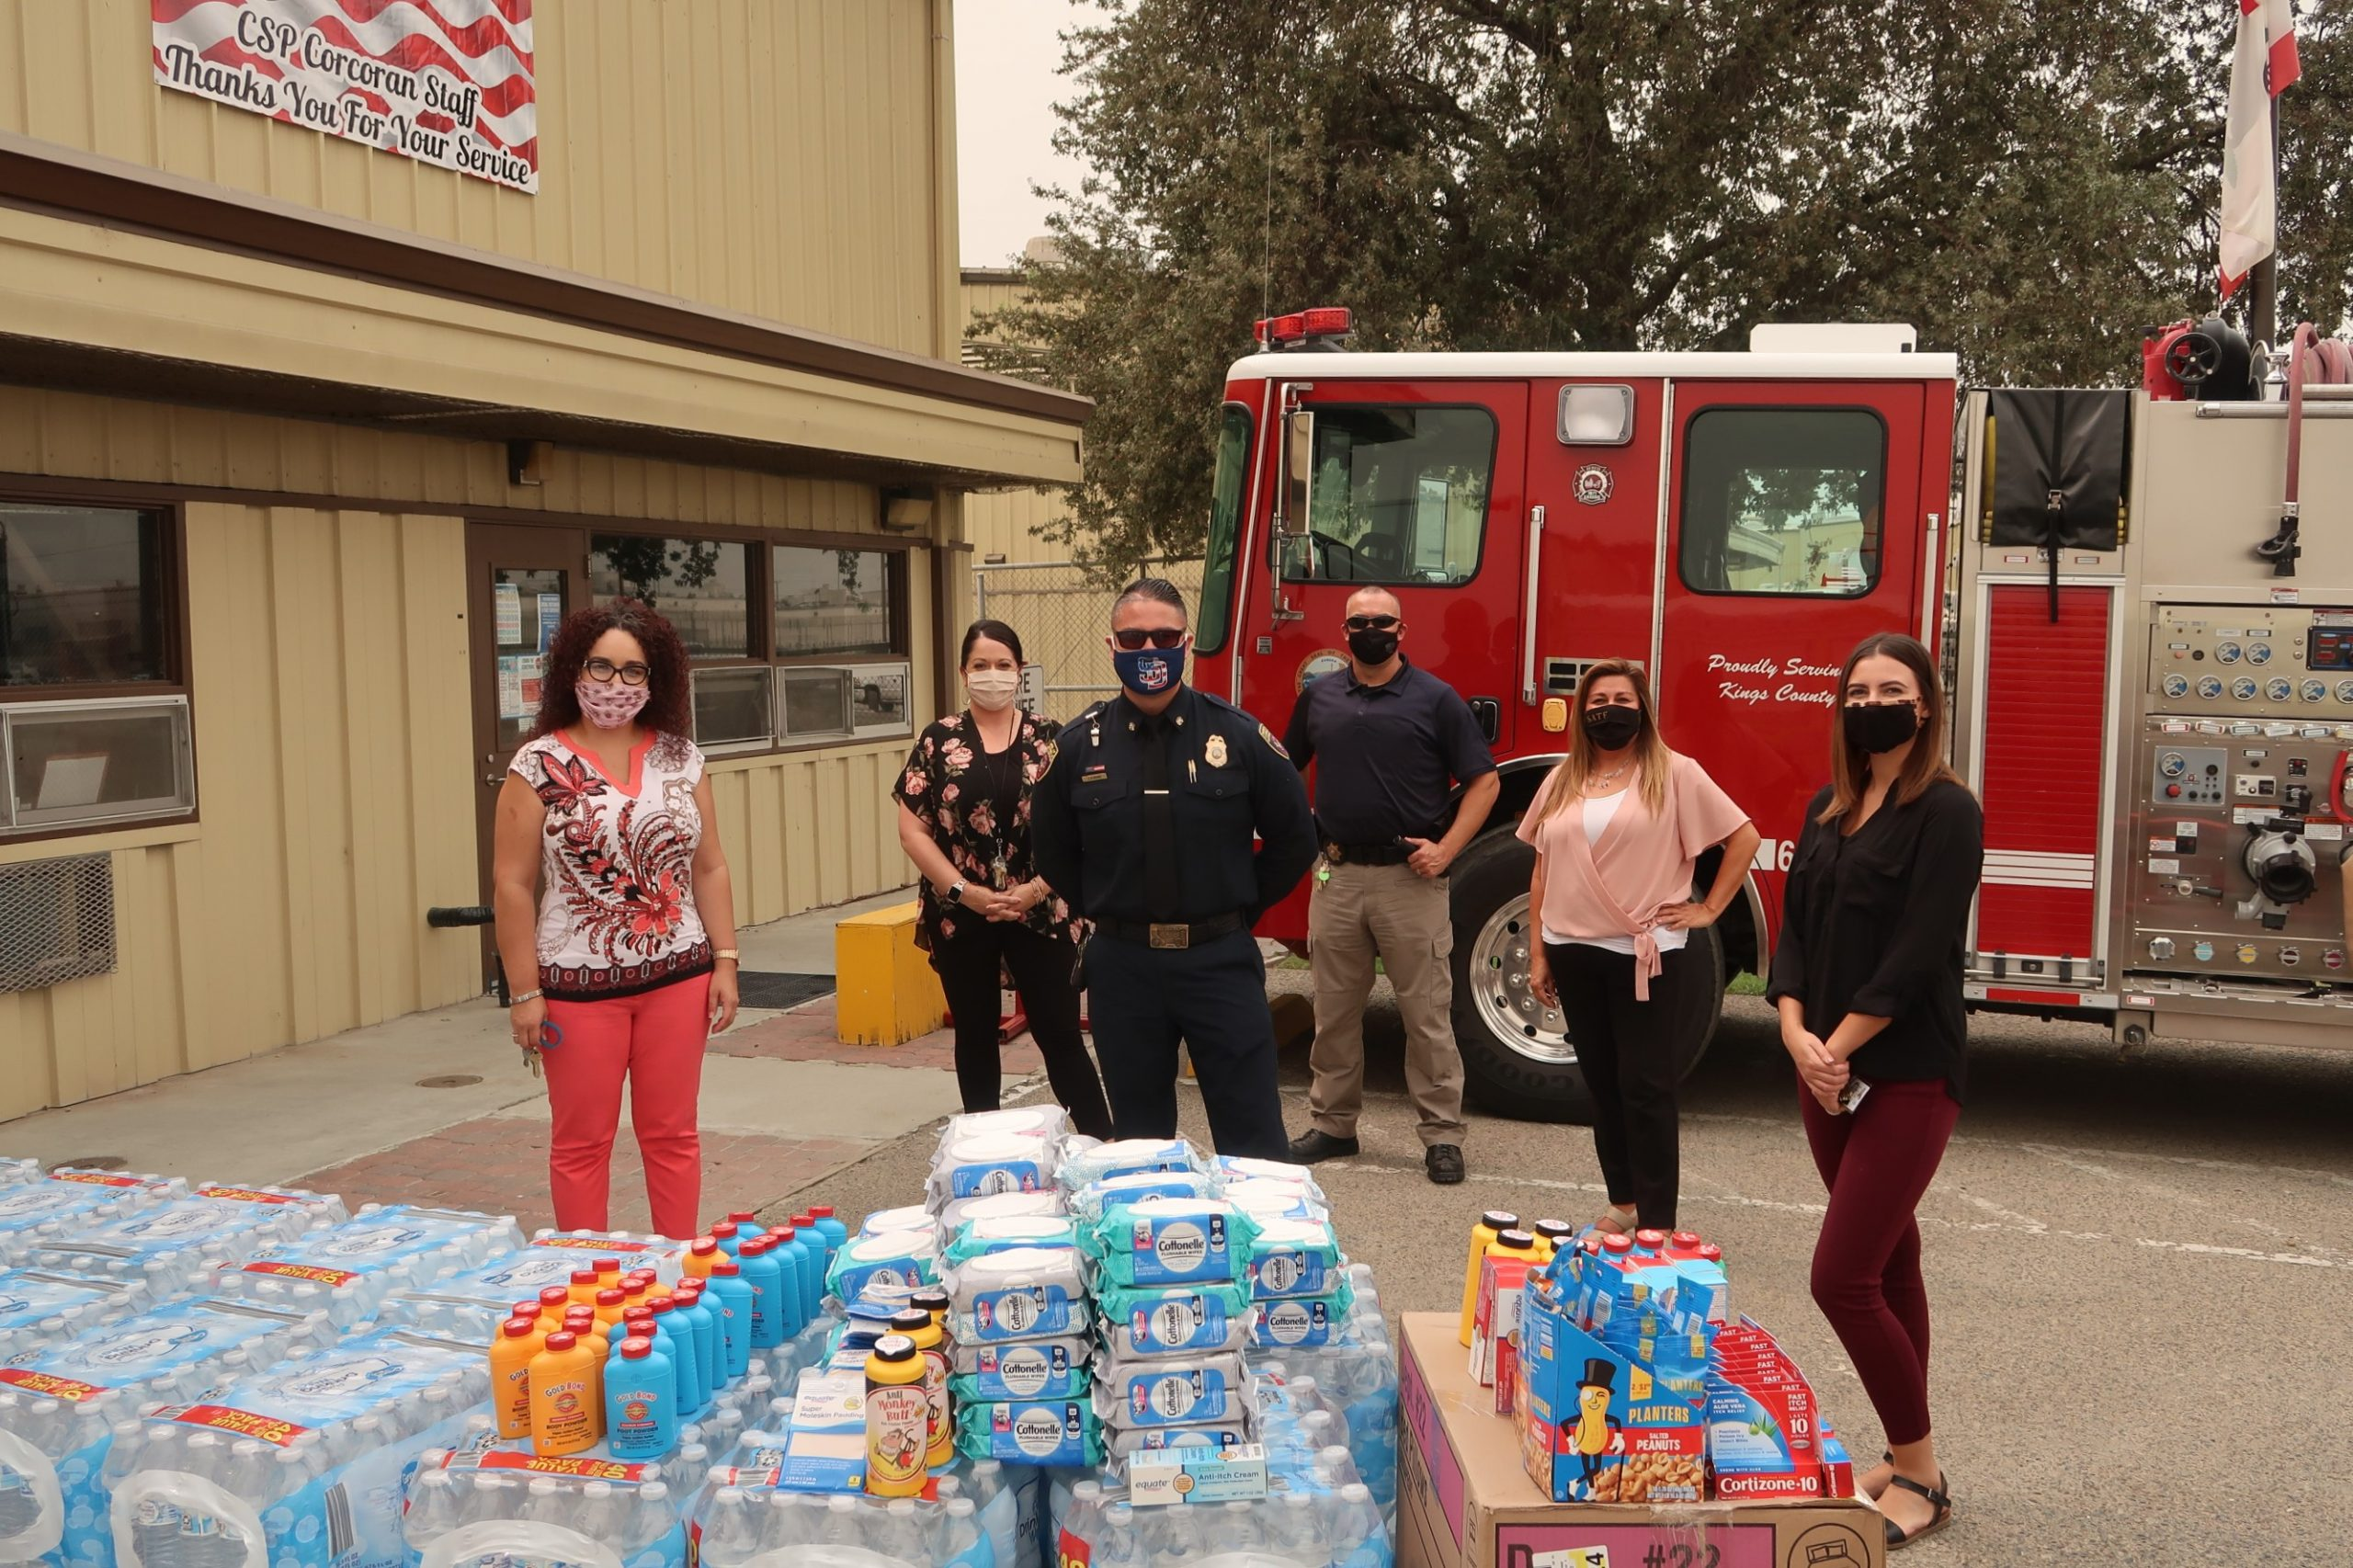 CDCR staff gather items to donate to fire evacuees in Frenso County.